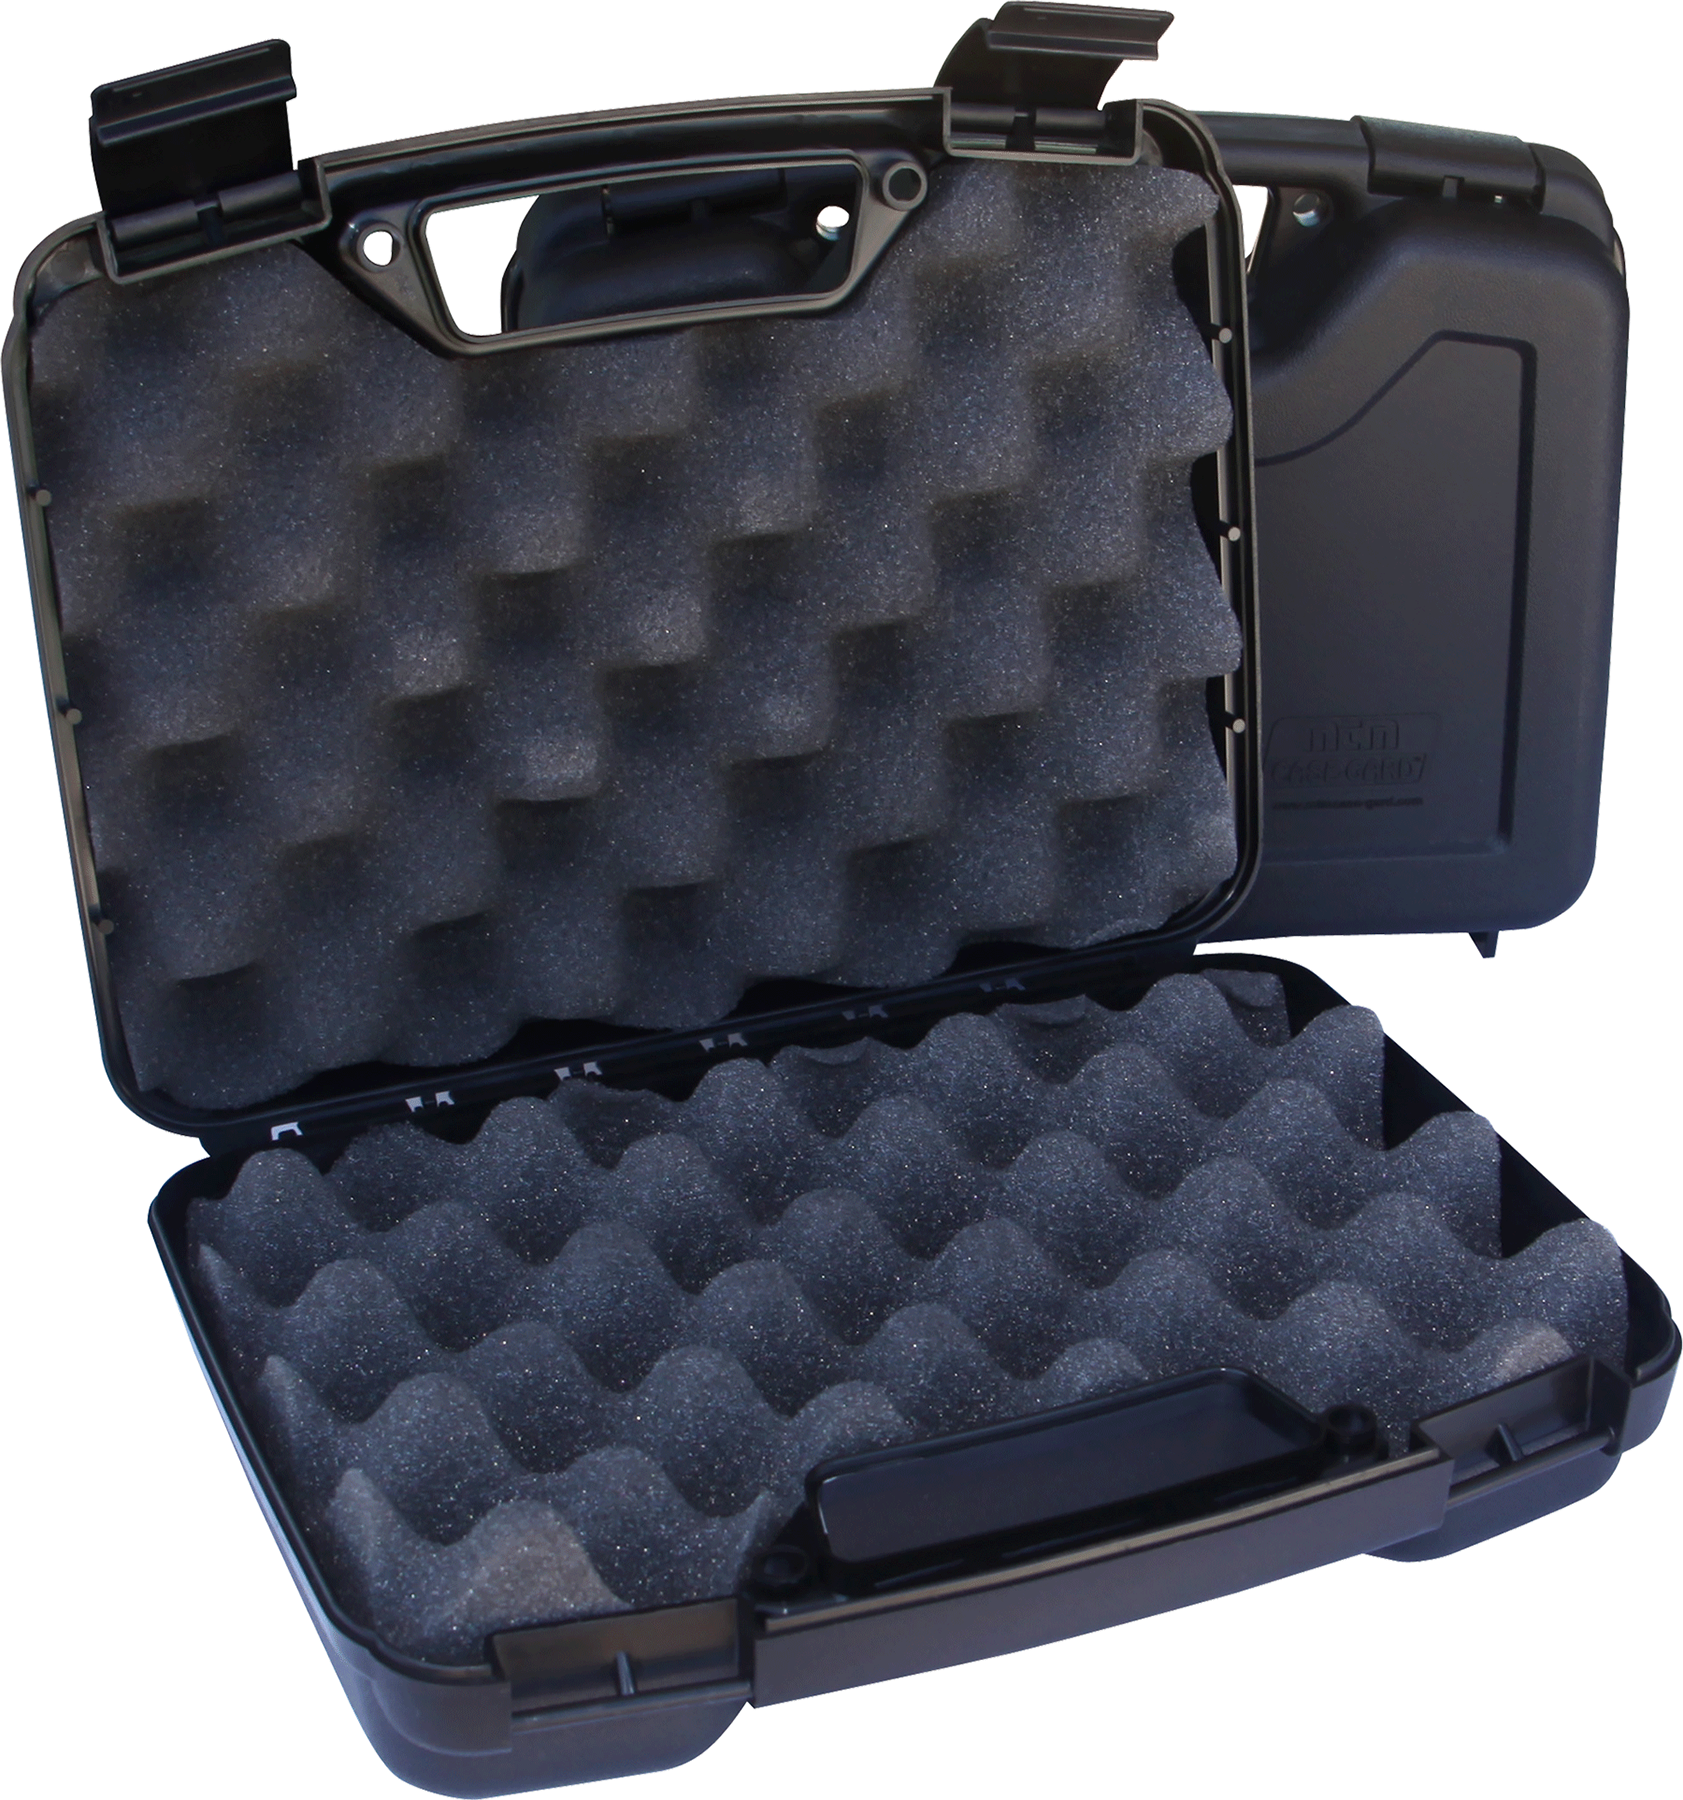 MTM 80540 Case-Gard Single Gun Case up to 4